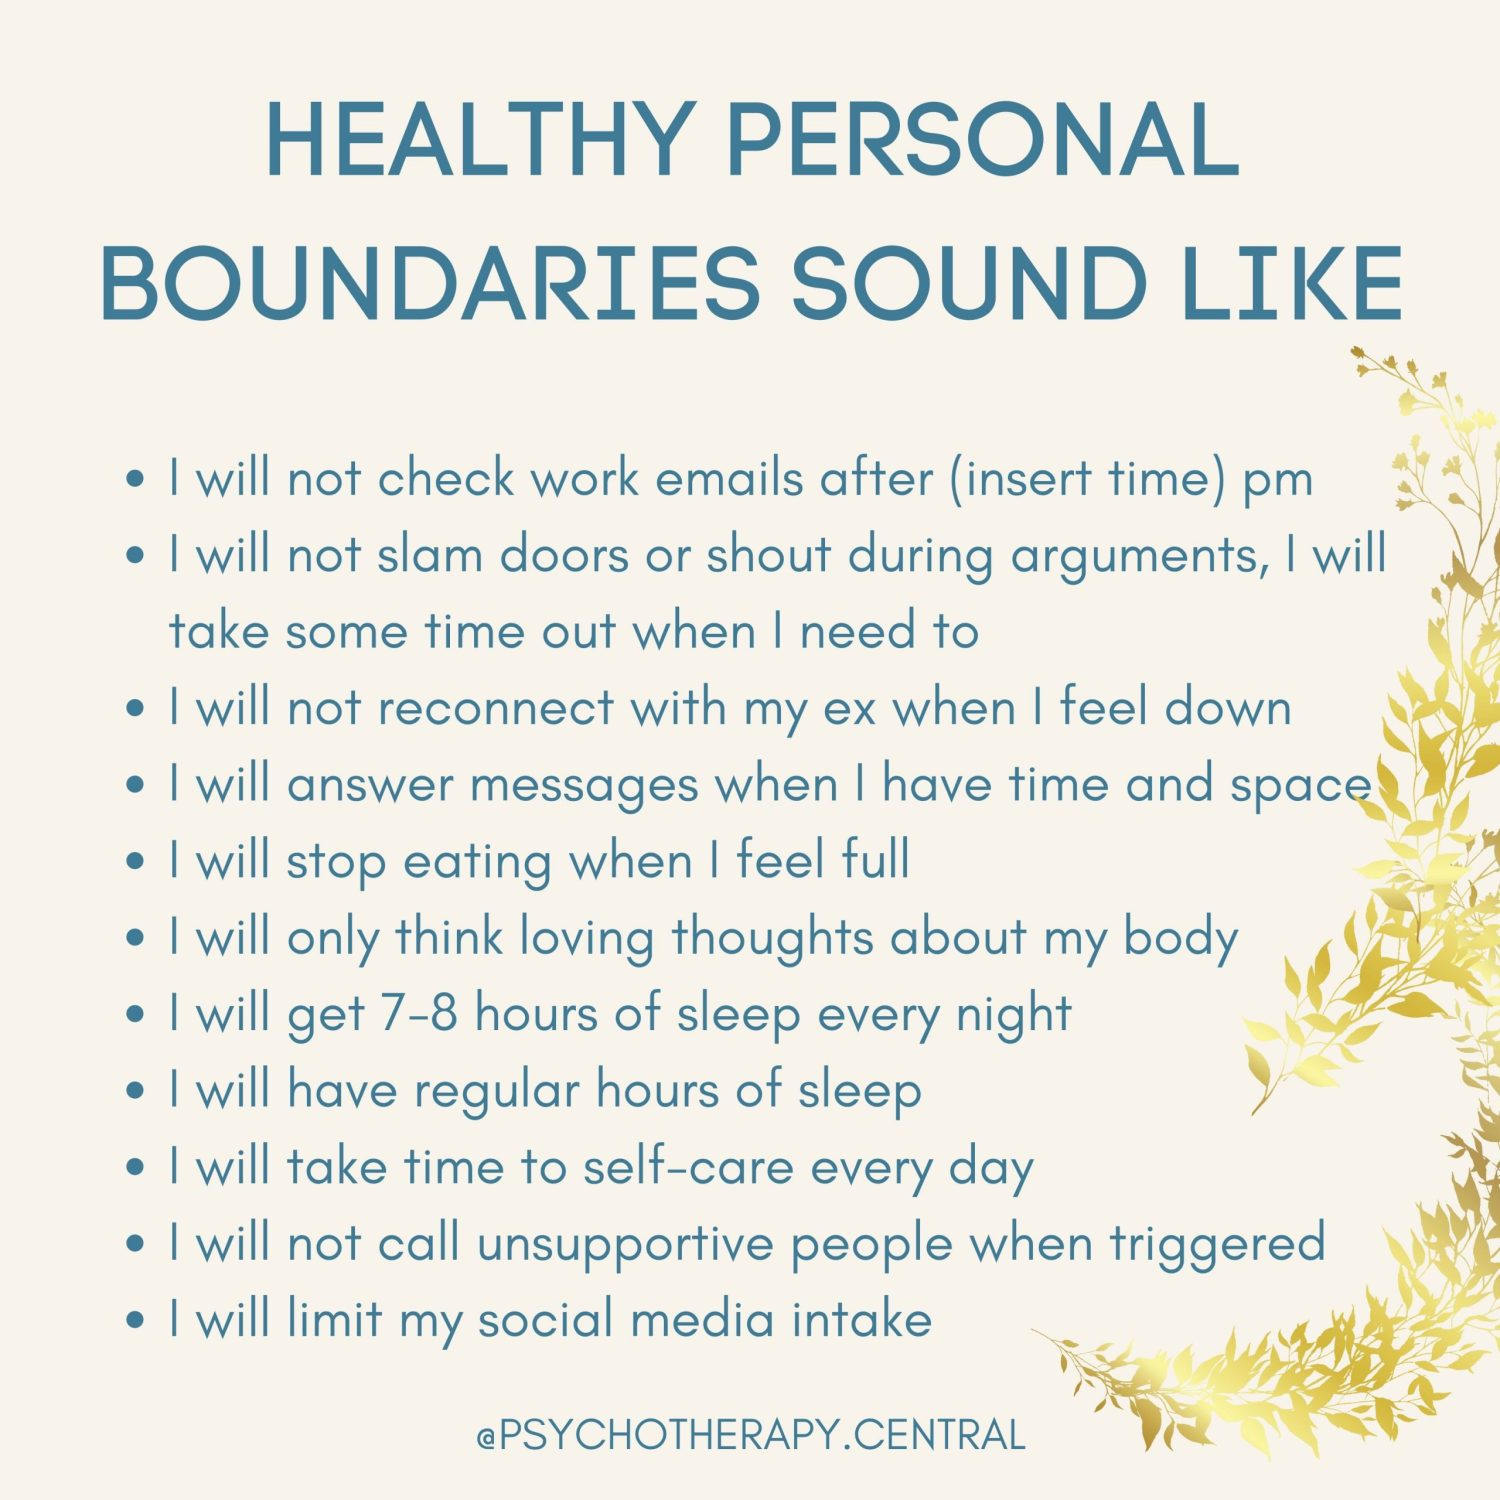 Healthy Personal Boundaries Sound Like